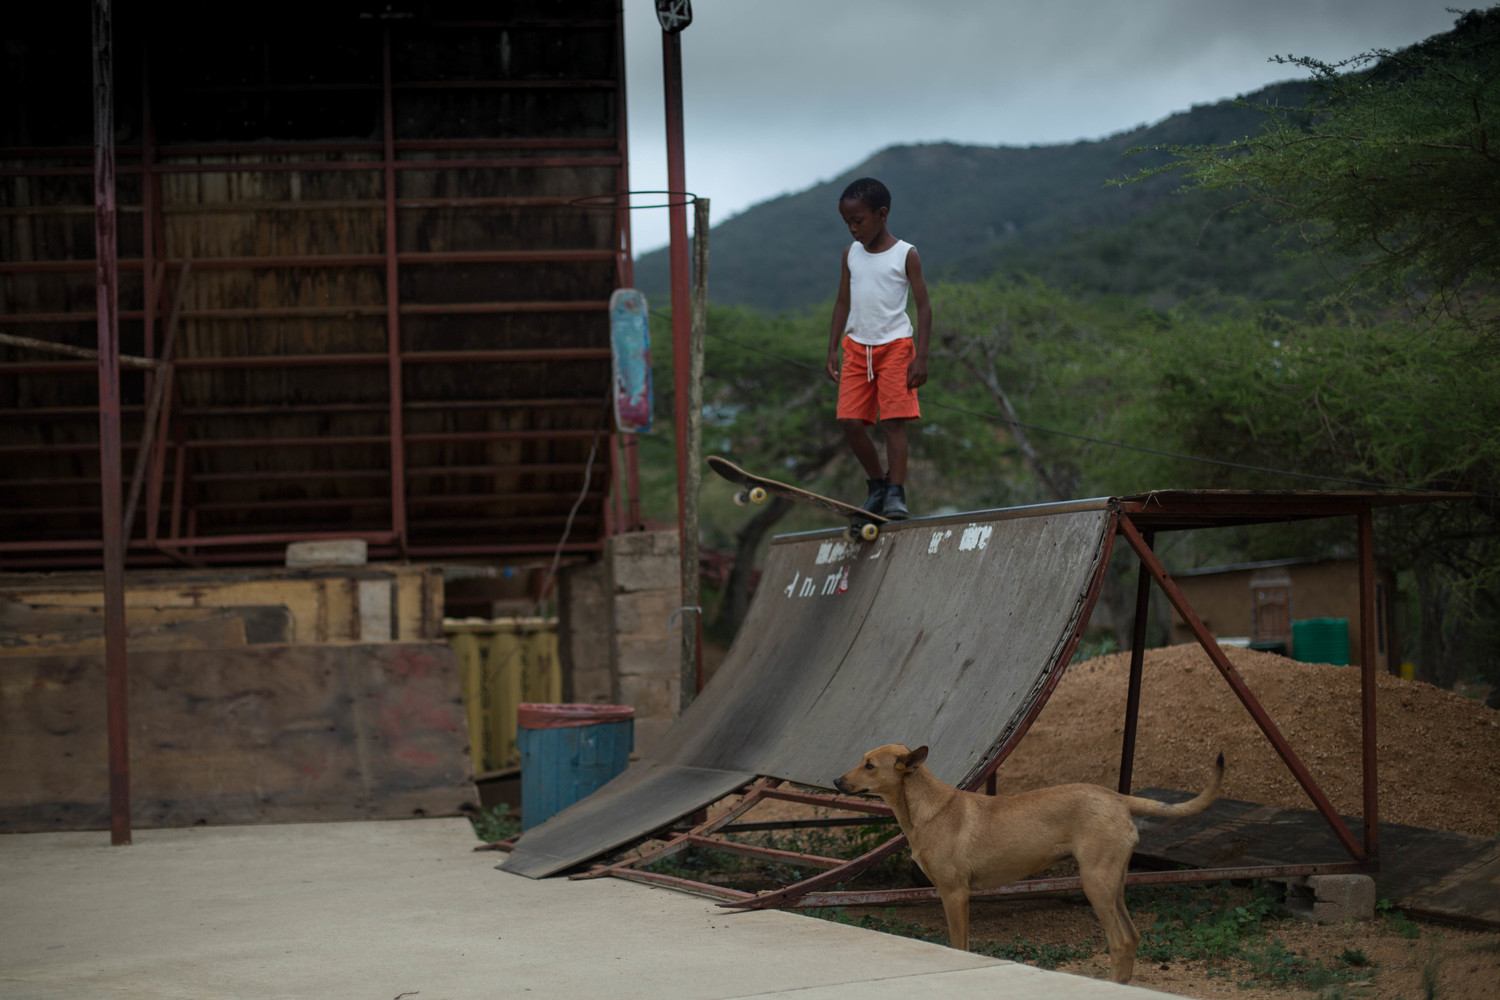 Peep This Film About the Young Skateboarding Subculture of Africa BE STREET